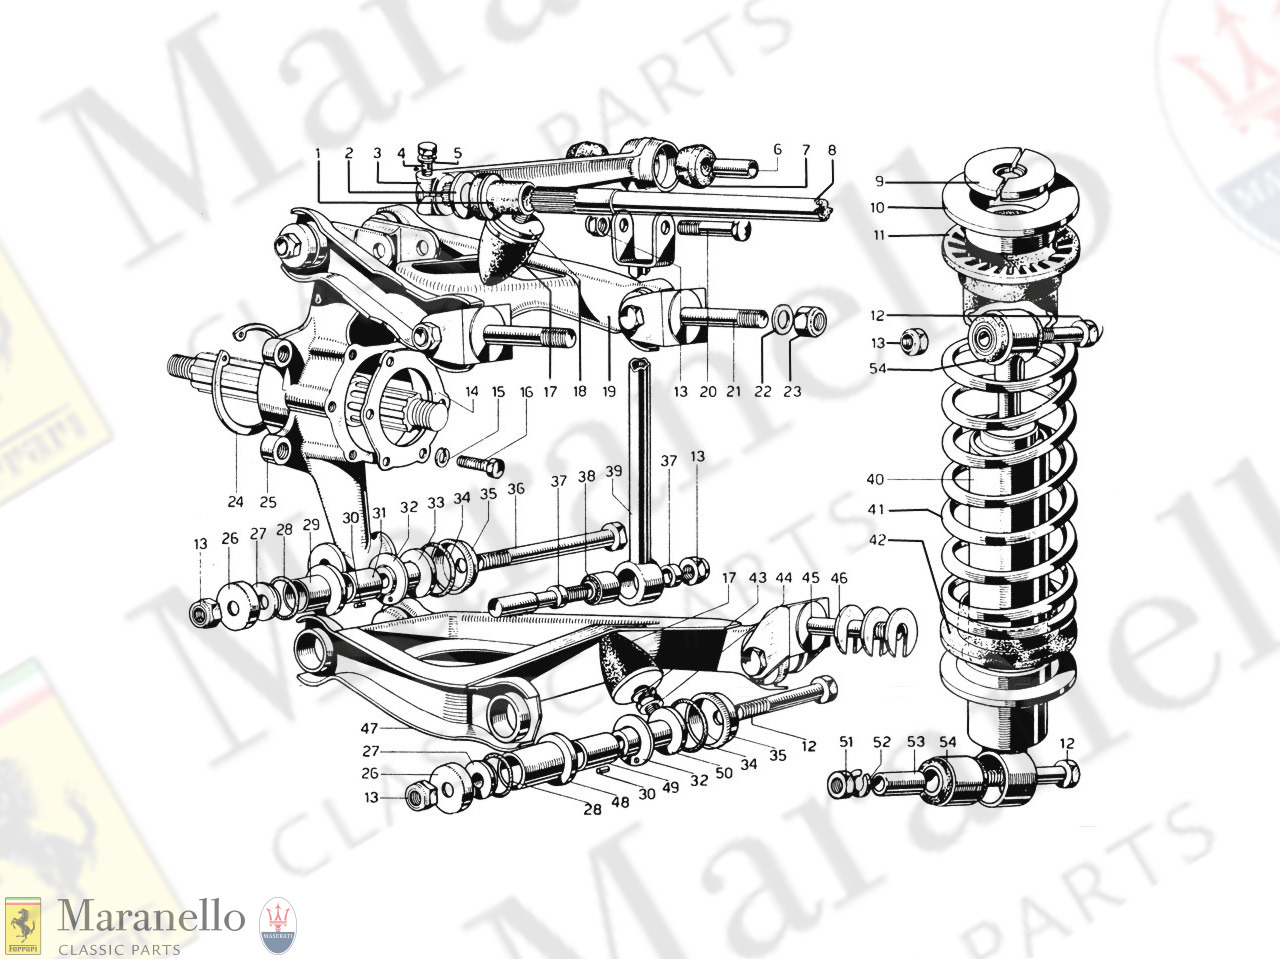 020 - Rear Suspension